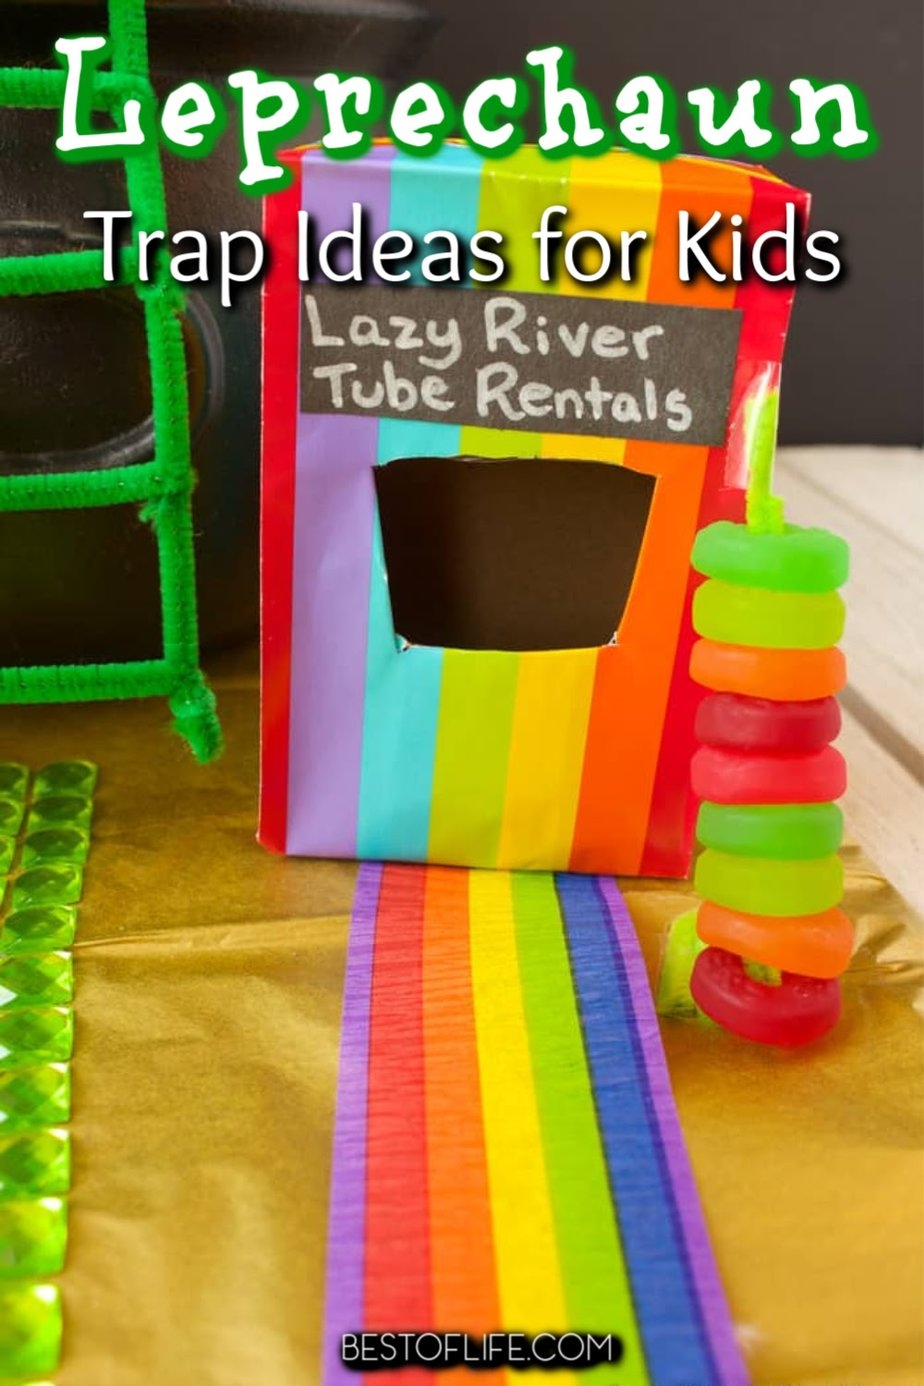 You can have a lot of St. Patrick's Day fun with your own DIY leprechaun trap ideas for kids and find new ways to celebrate St. Patrick's Day. St Patrick's Day Idea | St Patrick's Day Activities | DIY St Patrick's Day Ideas for Kids | Kids Activities | Leprechaun Ideas Trap #stpatricksday #DIY